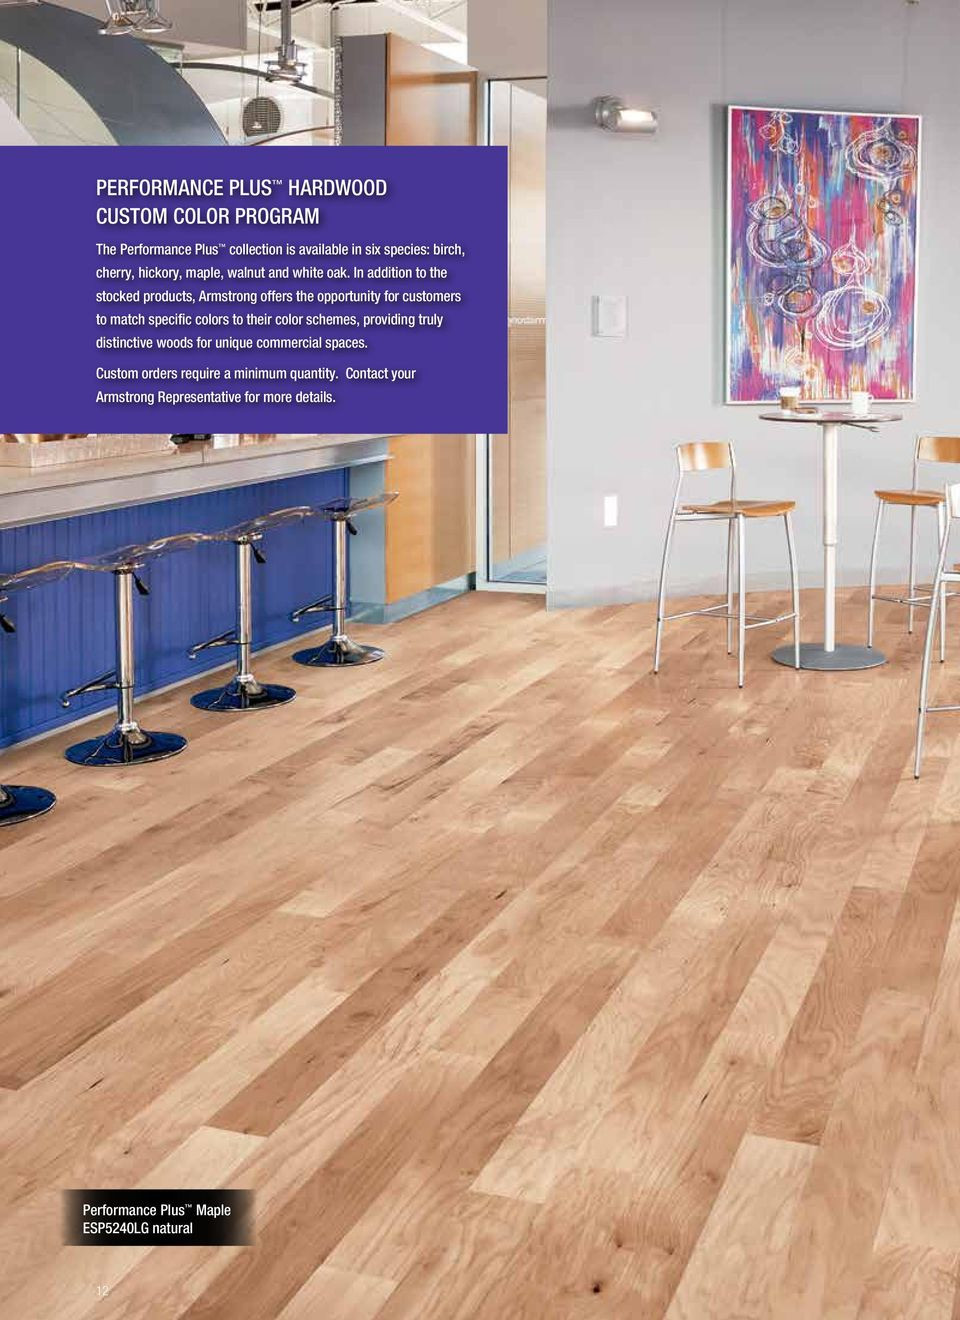 bostitch 2 hardwood flooring nails of performance plus midtown pdf inside in addition to the stocked products armstrong offers the opportunity for customers to match specific